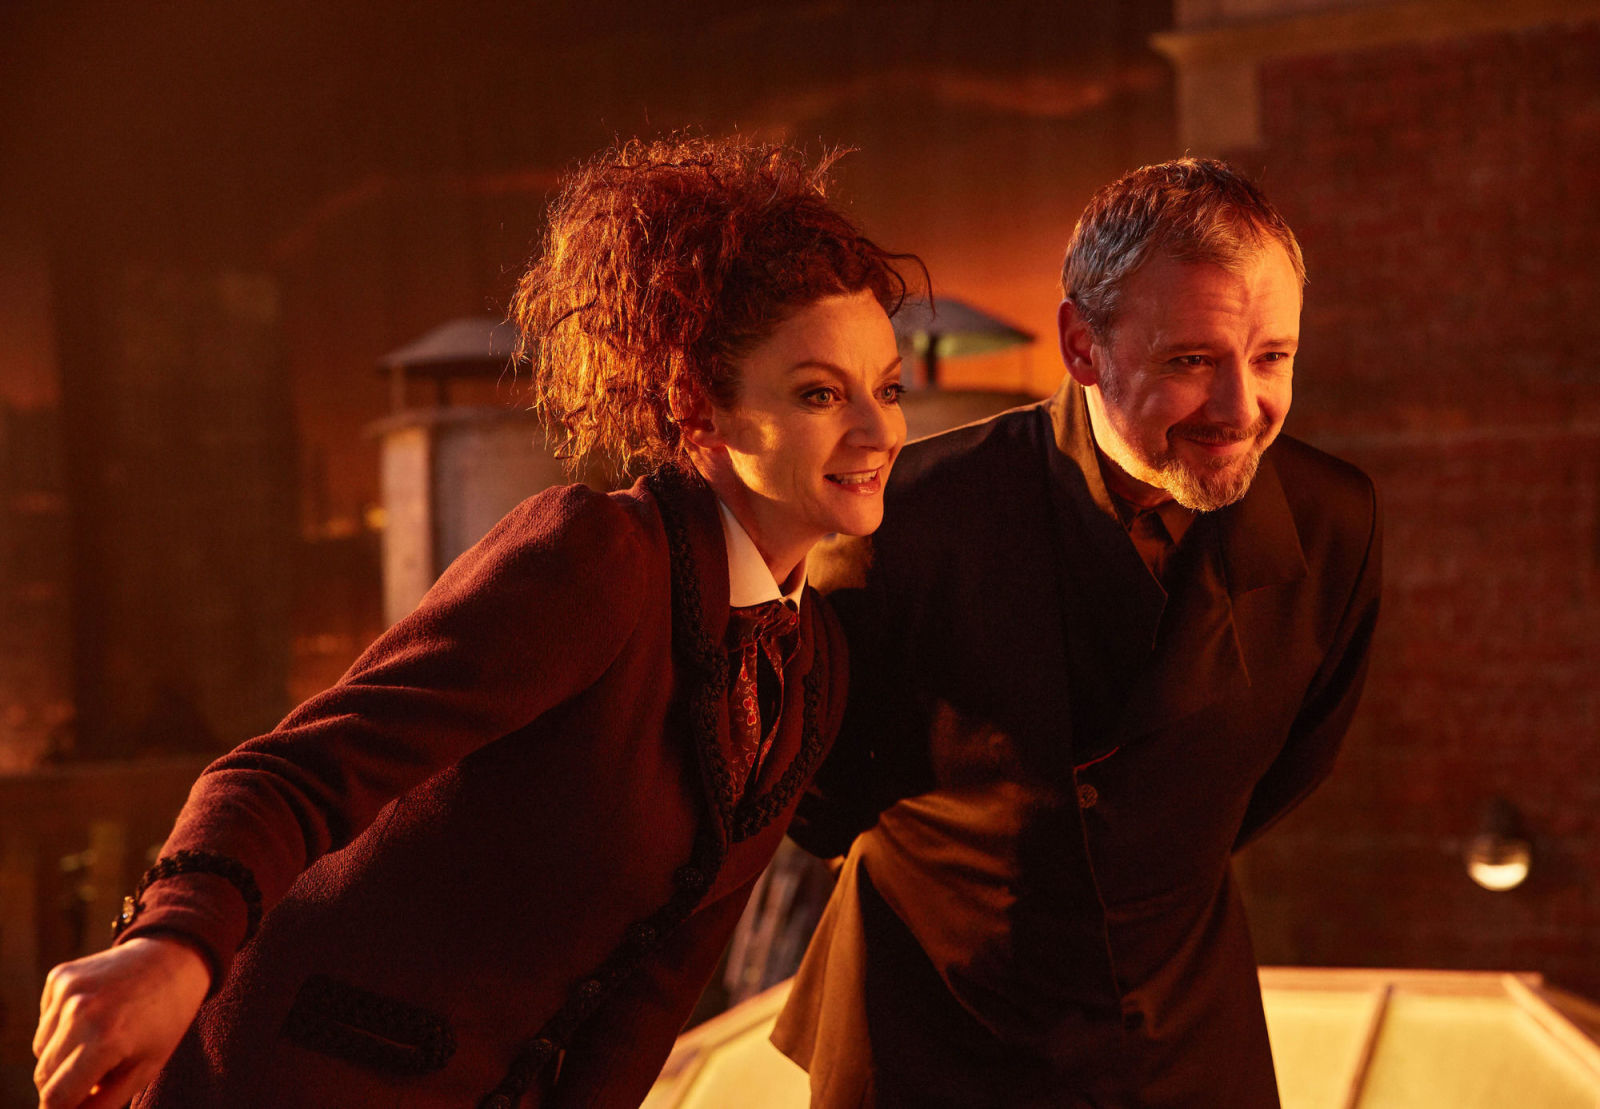 Doctor Who: Michelle Gomez and Matt Lucas bid farewell to their characters following series 10 finale